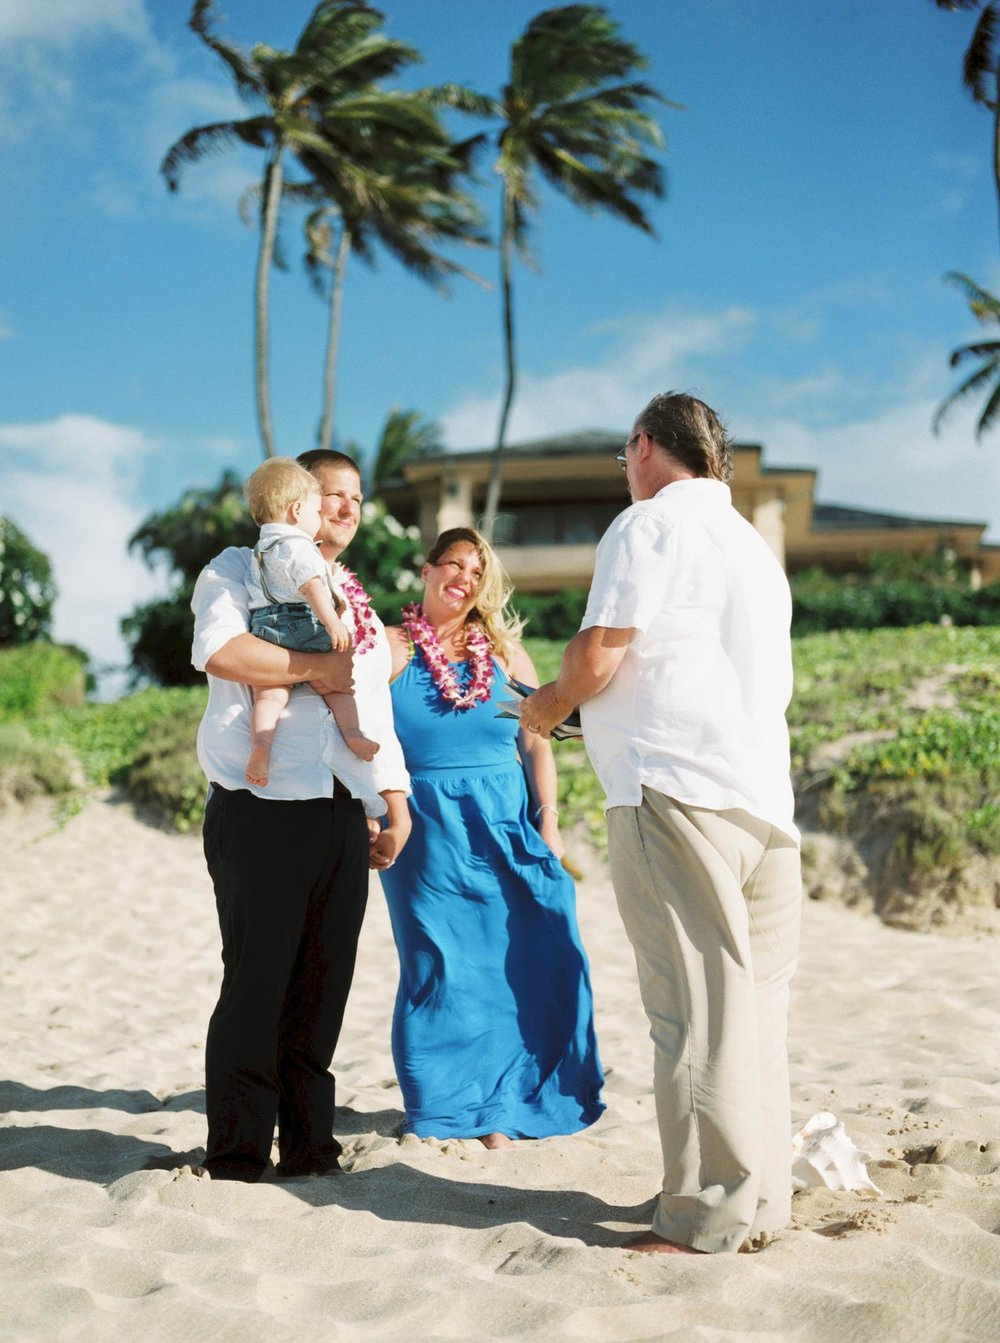 Maui-vow-renewal-family-photos-006.jpg